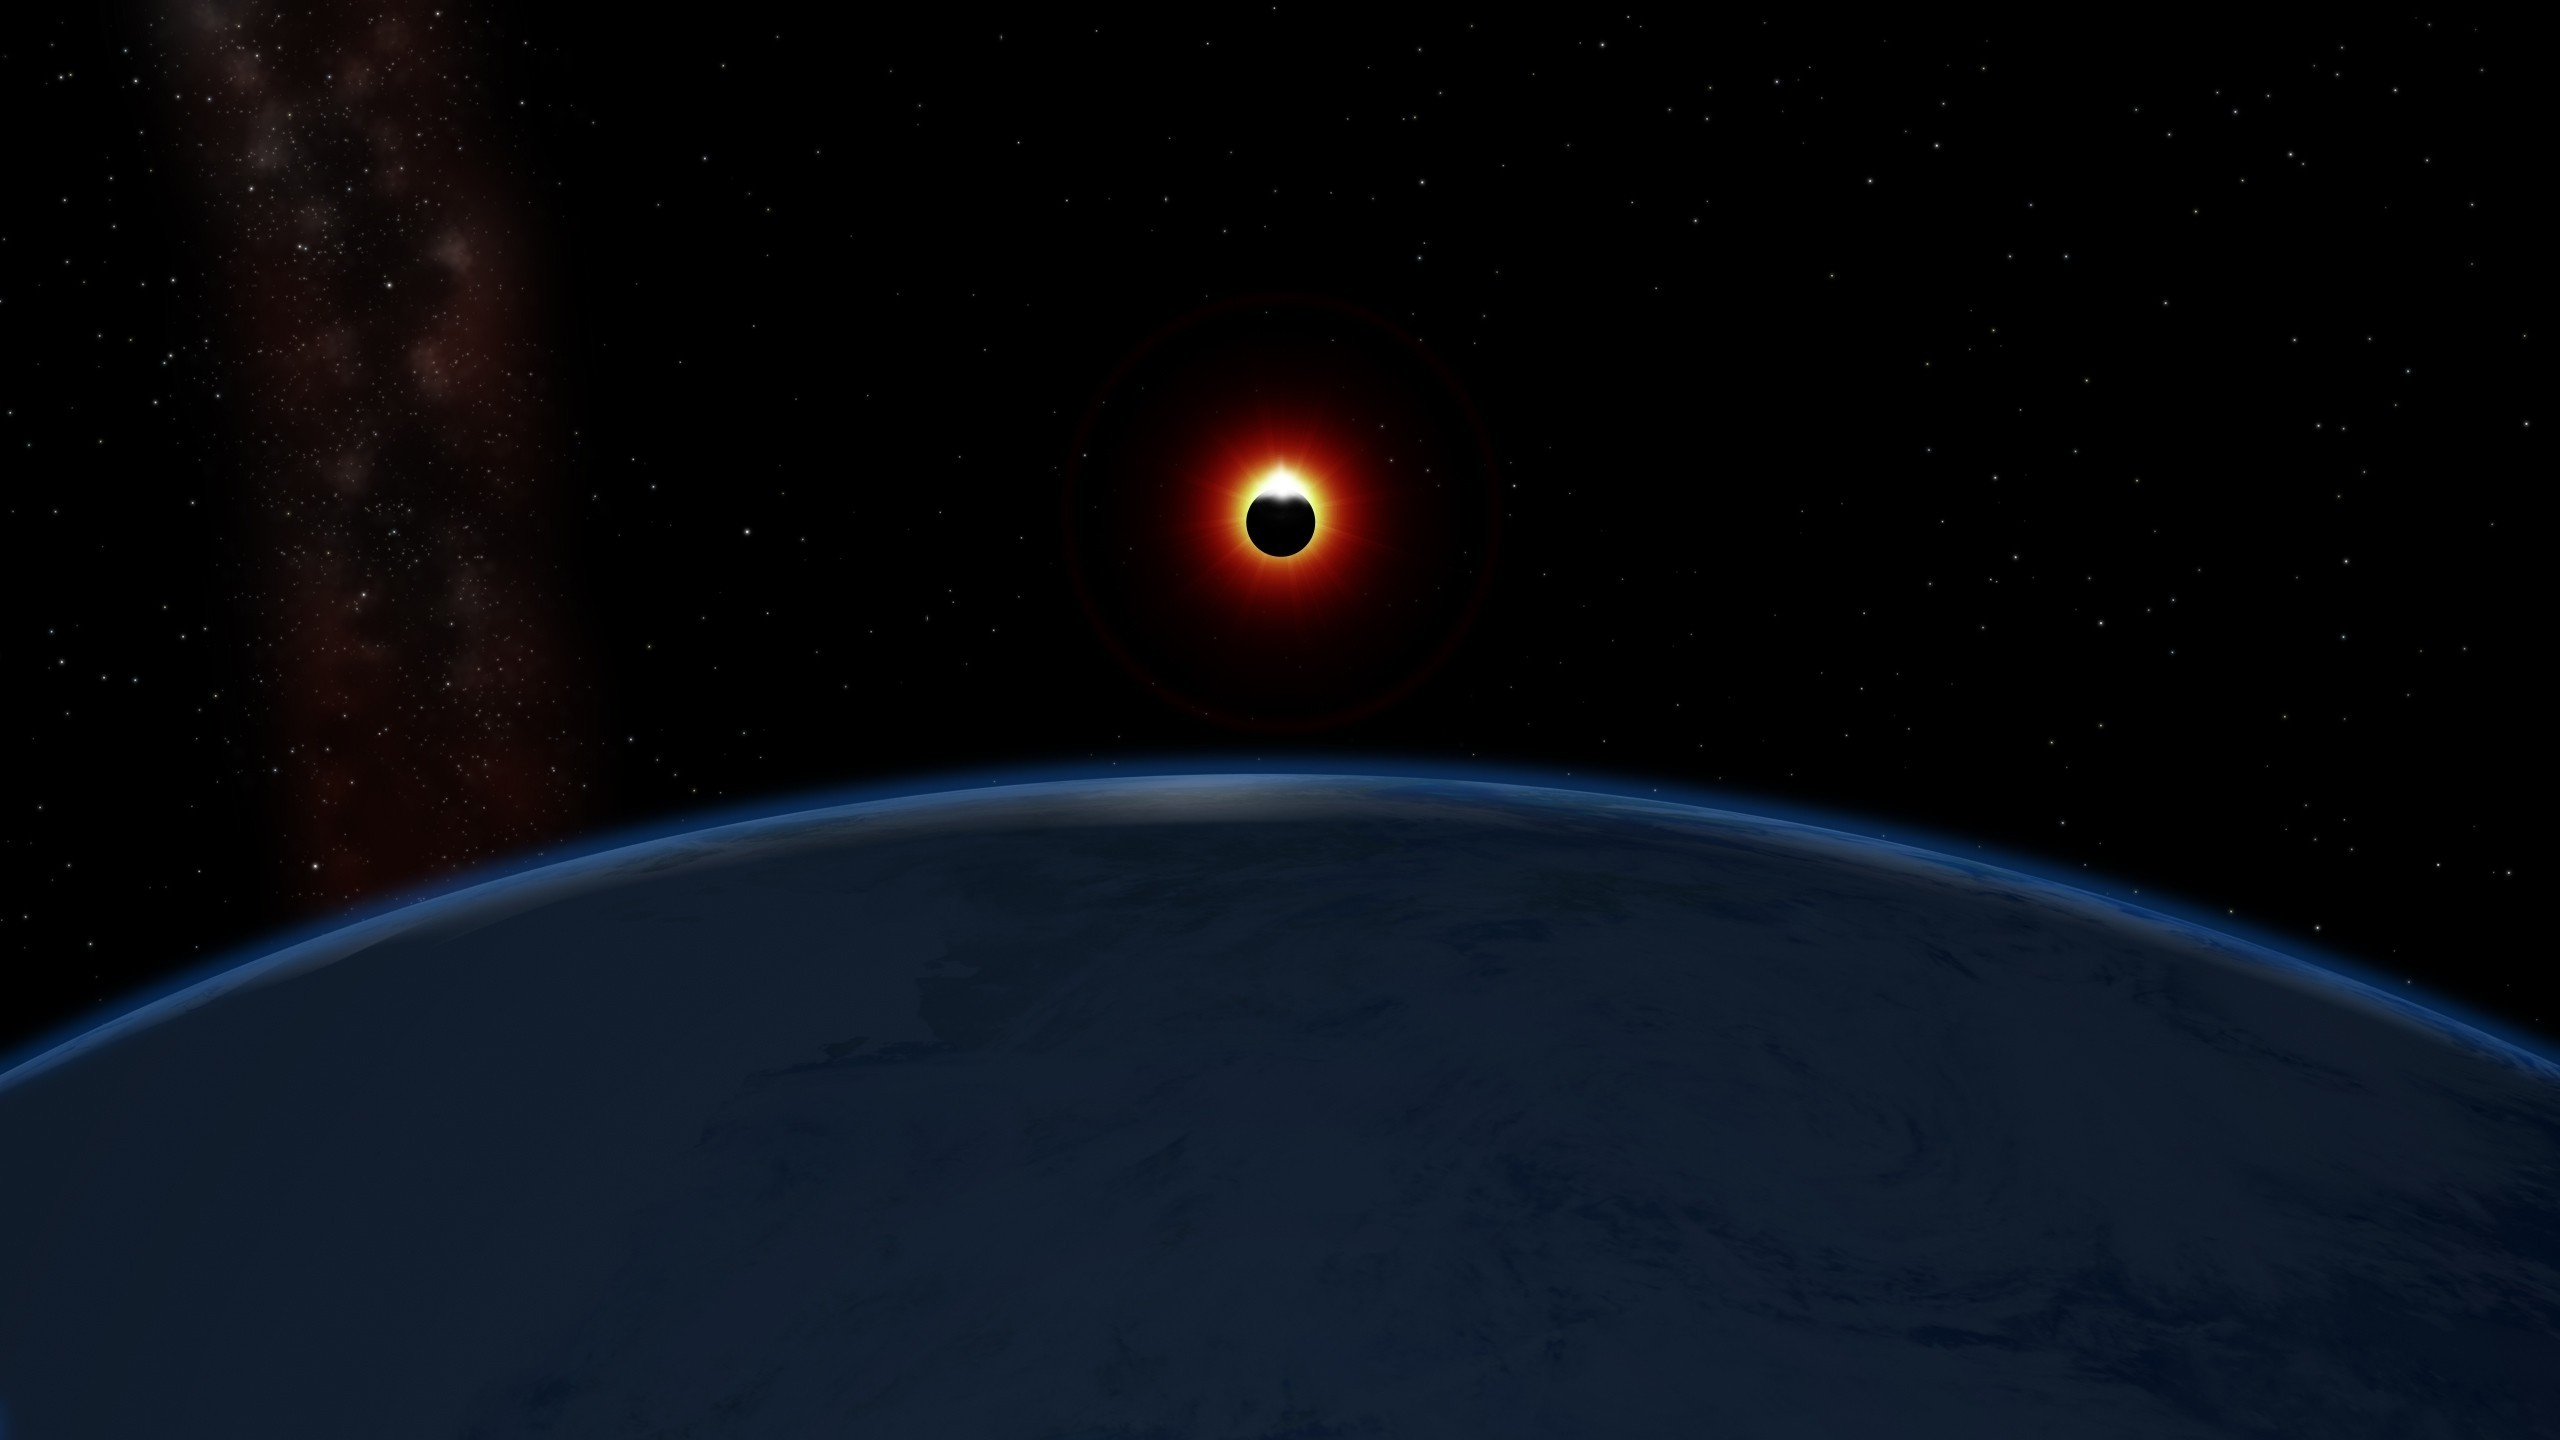 Solar Eclipse Hd Wallpaper Posted By Sarah Tremblay